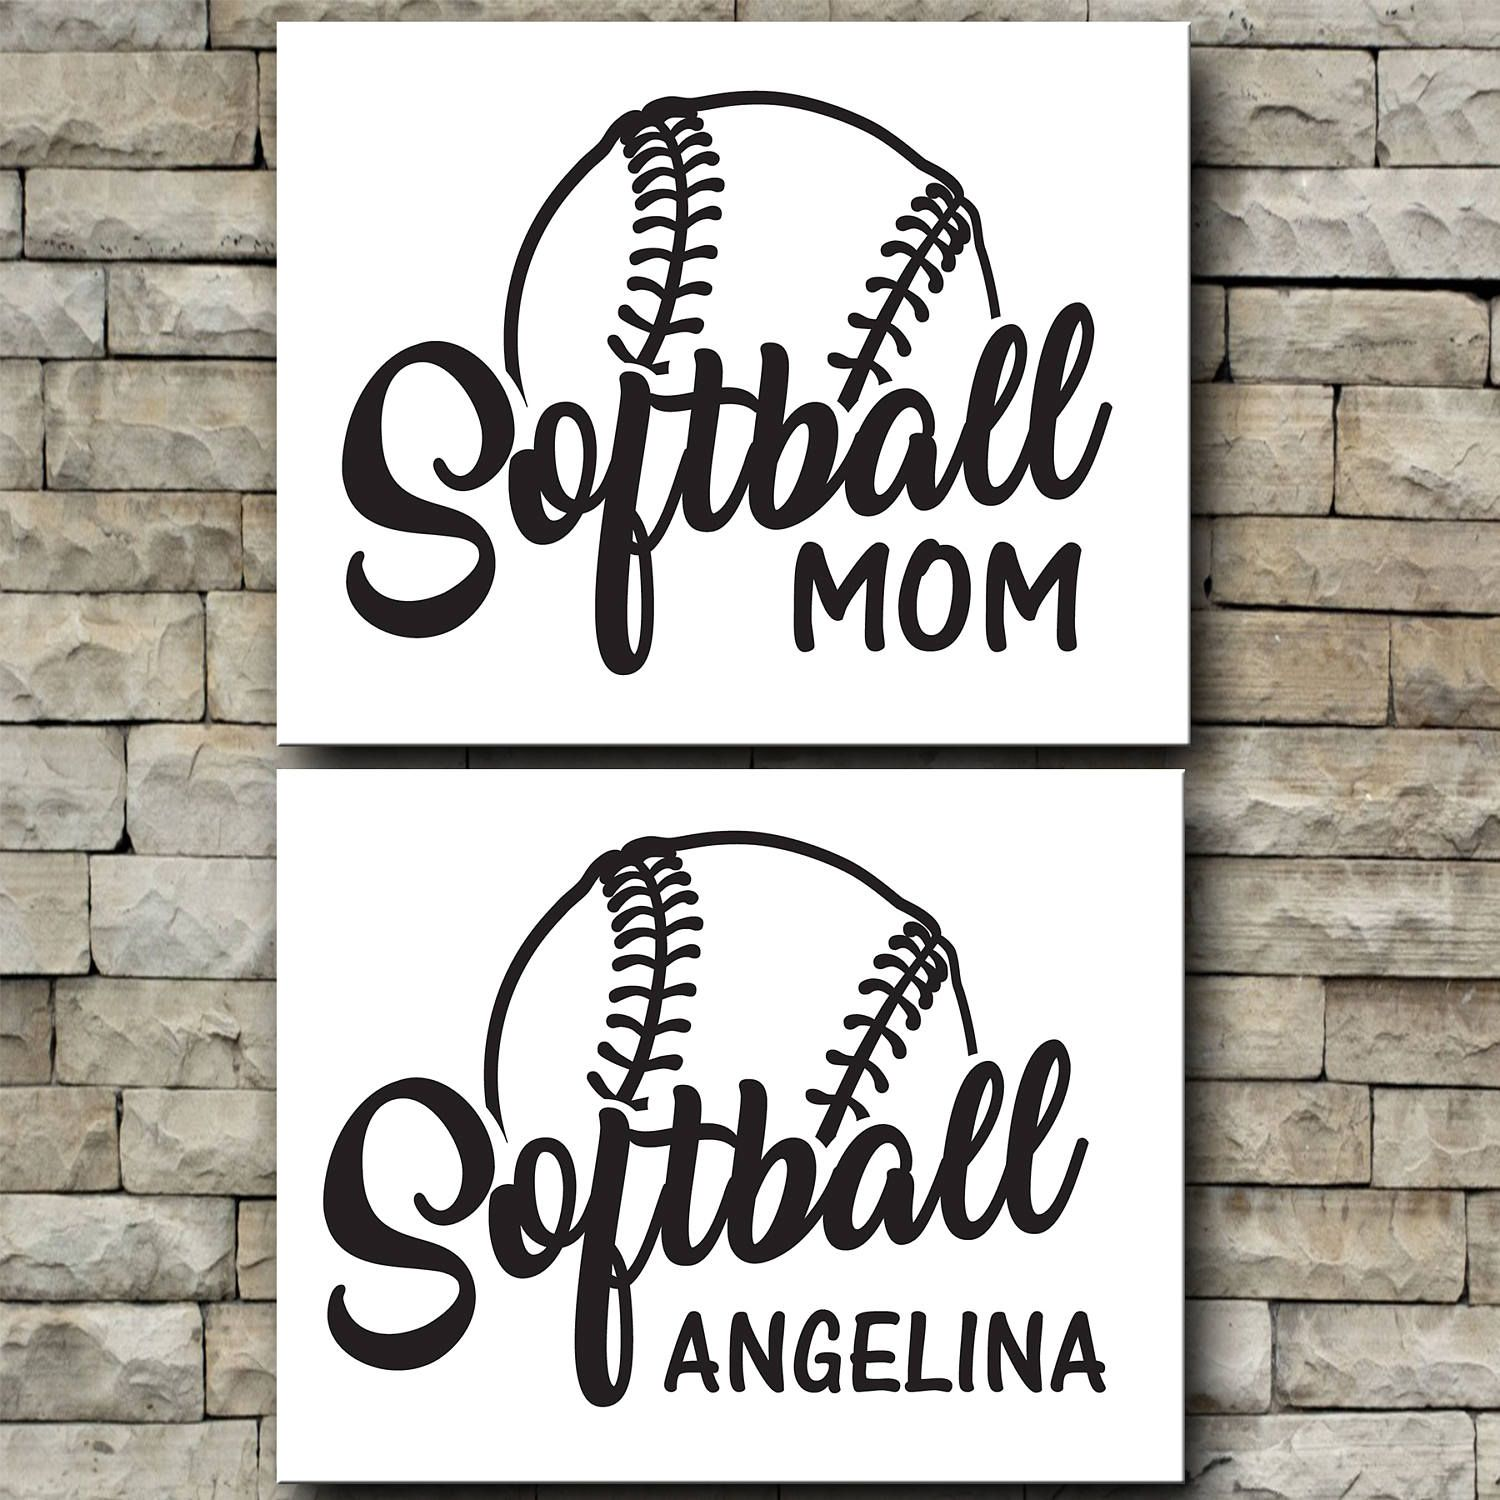 Softball Personalized Vinyl Decal Mom Dad Your Name Team Etsy Personalized Vinyl Decal Vinyl Decals Sports Vinyl Decals